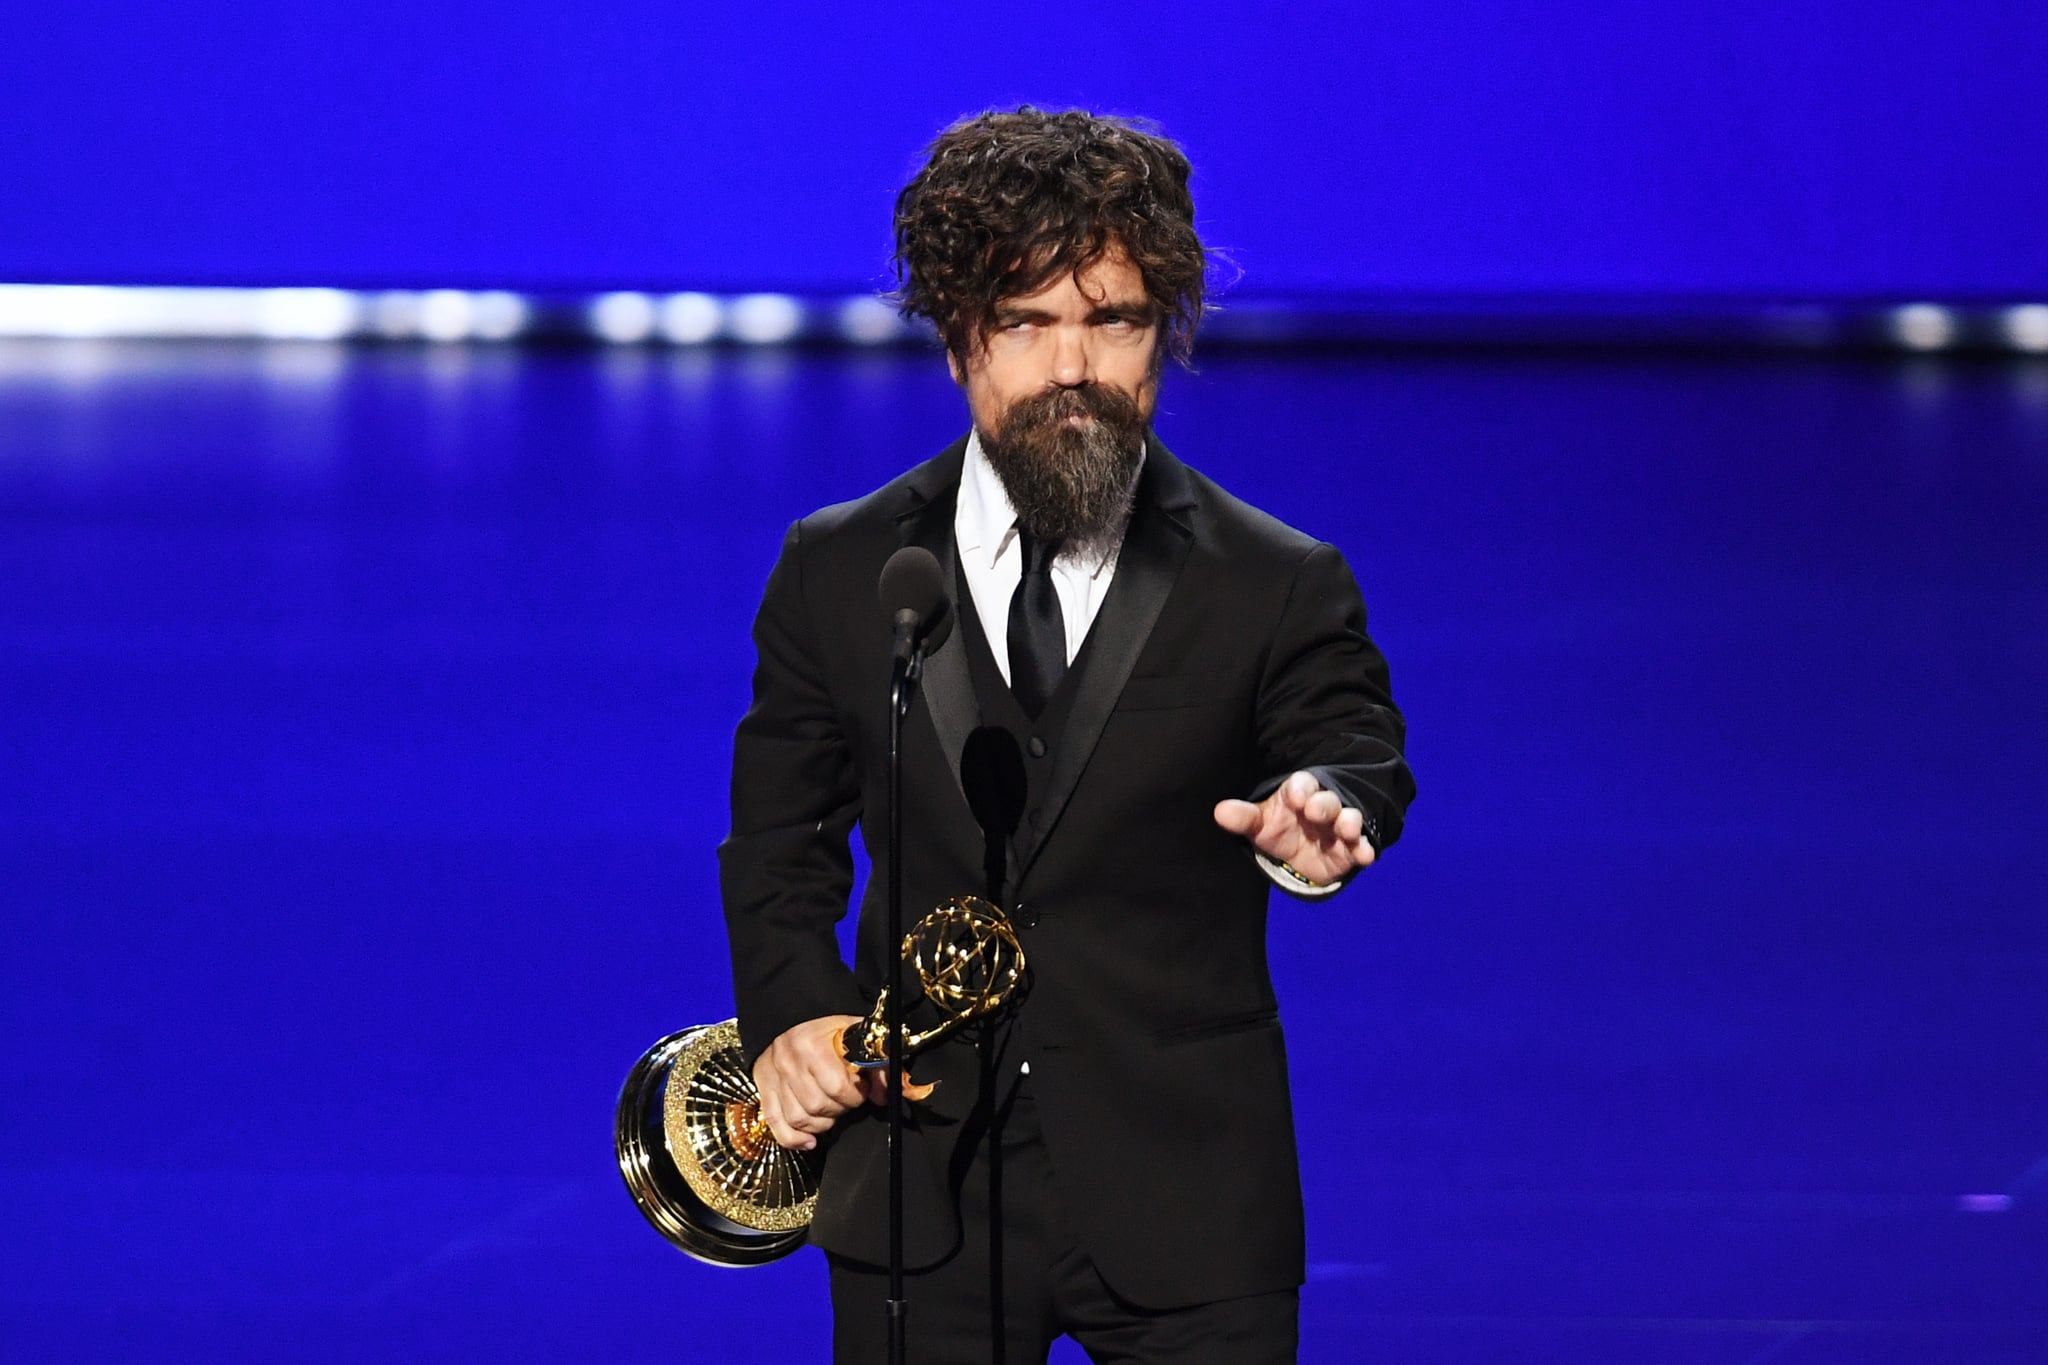 LOS ANGELES, CALIFORNIA - SEPTEMBER 22: Peter Dinklage accepts the Outstanding Supporting Actor in a Drama Series award for 'Game of Thrones' onstage during the 71st Emmy Awards at Microsoft Theatre on September 22, 2019 in Los Angeles, California. (Photo by Kevin Winter/Getty Images)